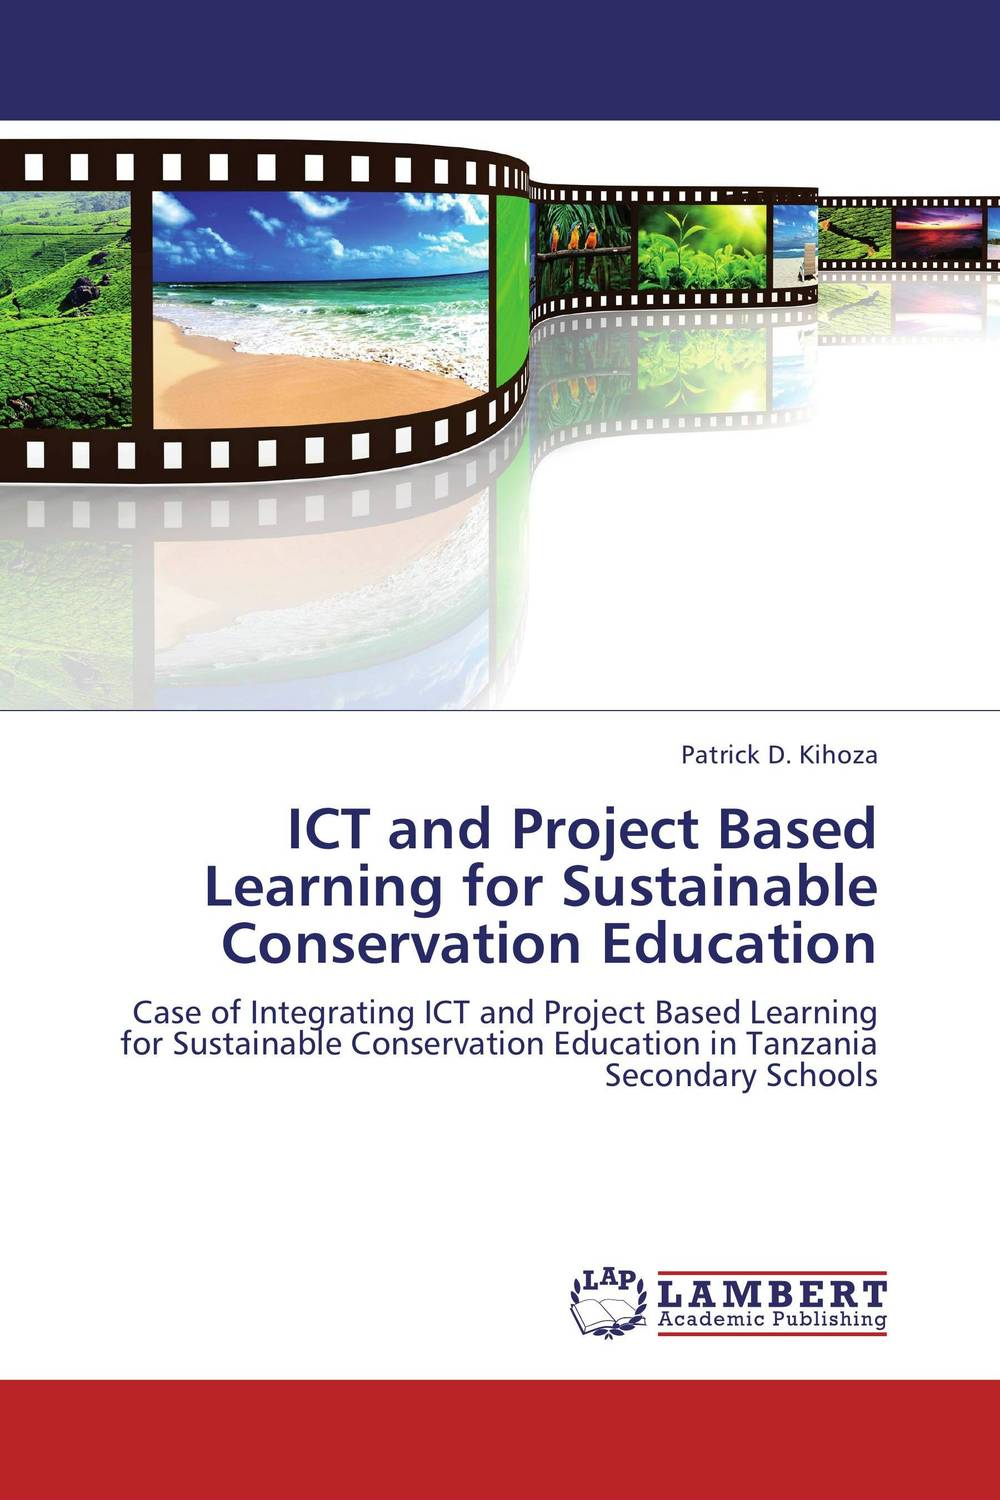 ICT and Project Based Learning for Sustainable Conservation Education jw sport mn 017a